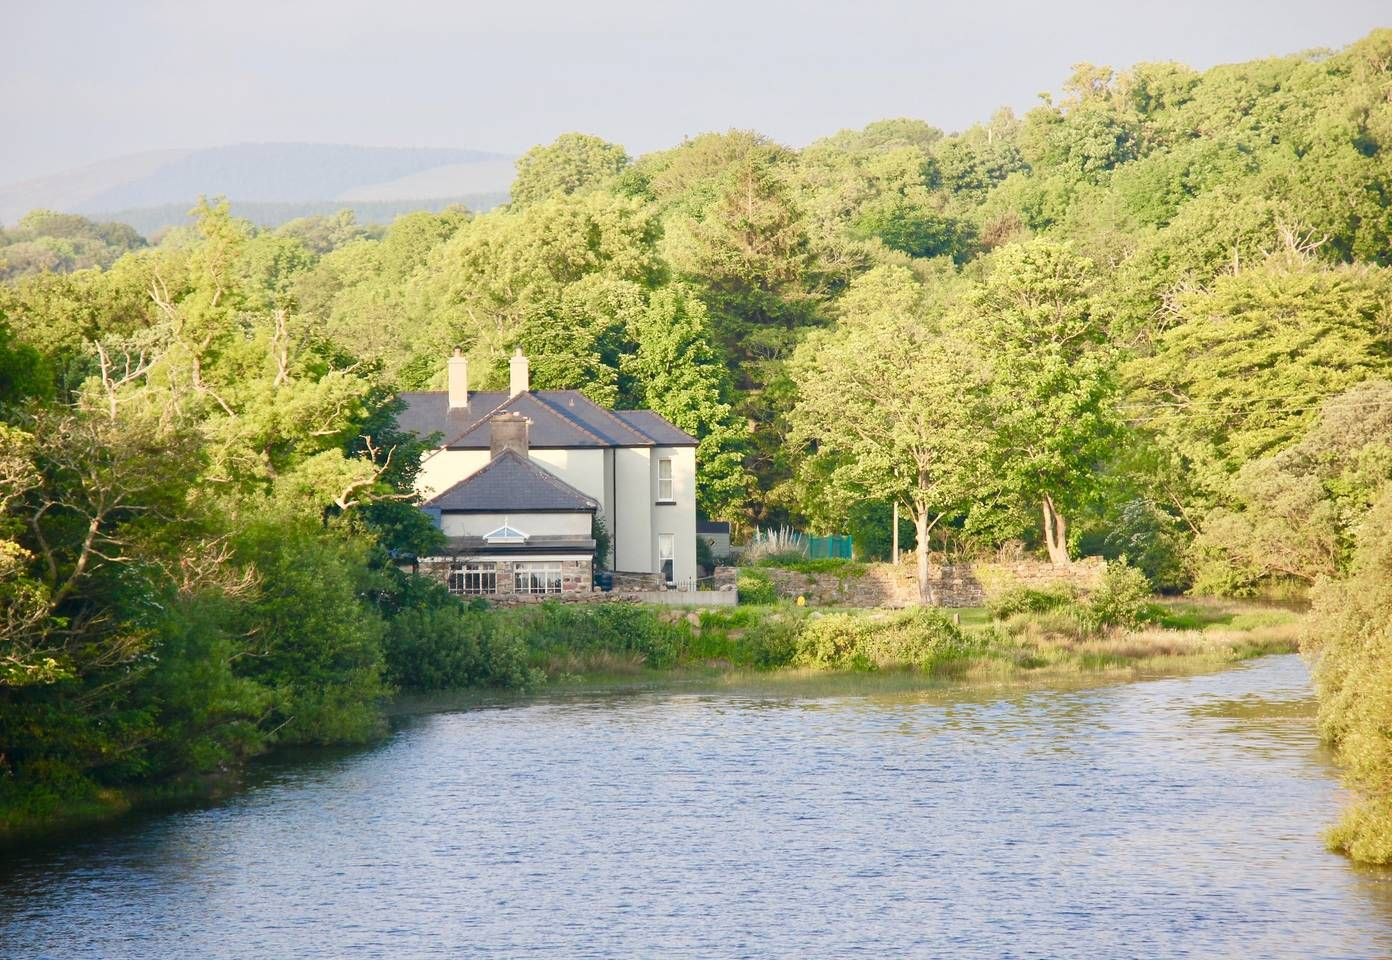 Riverside House 'Blue Room' Bed and breakfasts for Rent